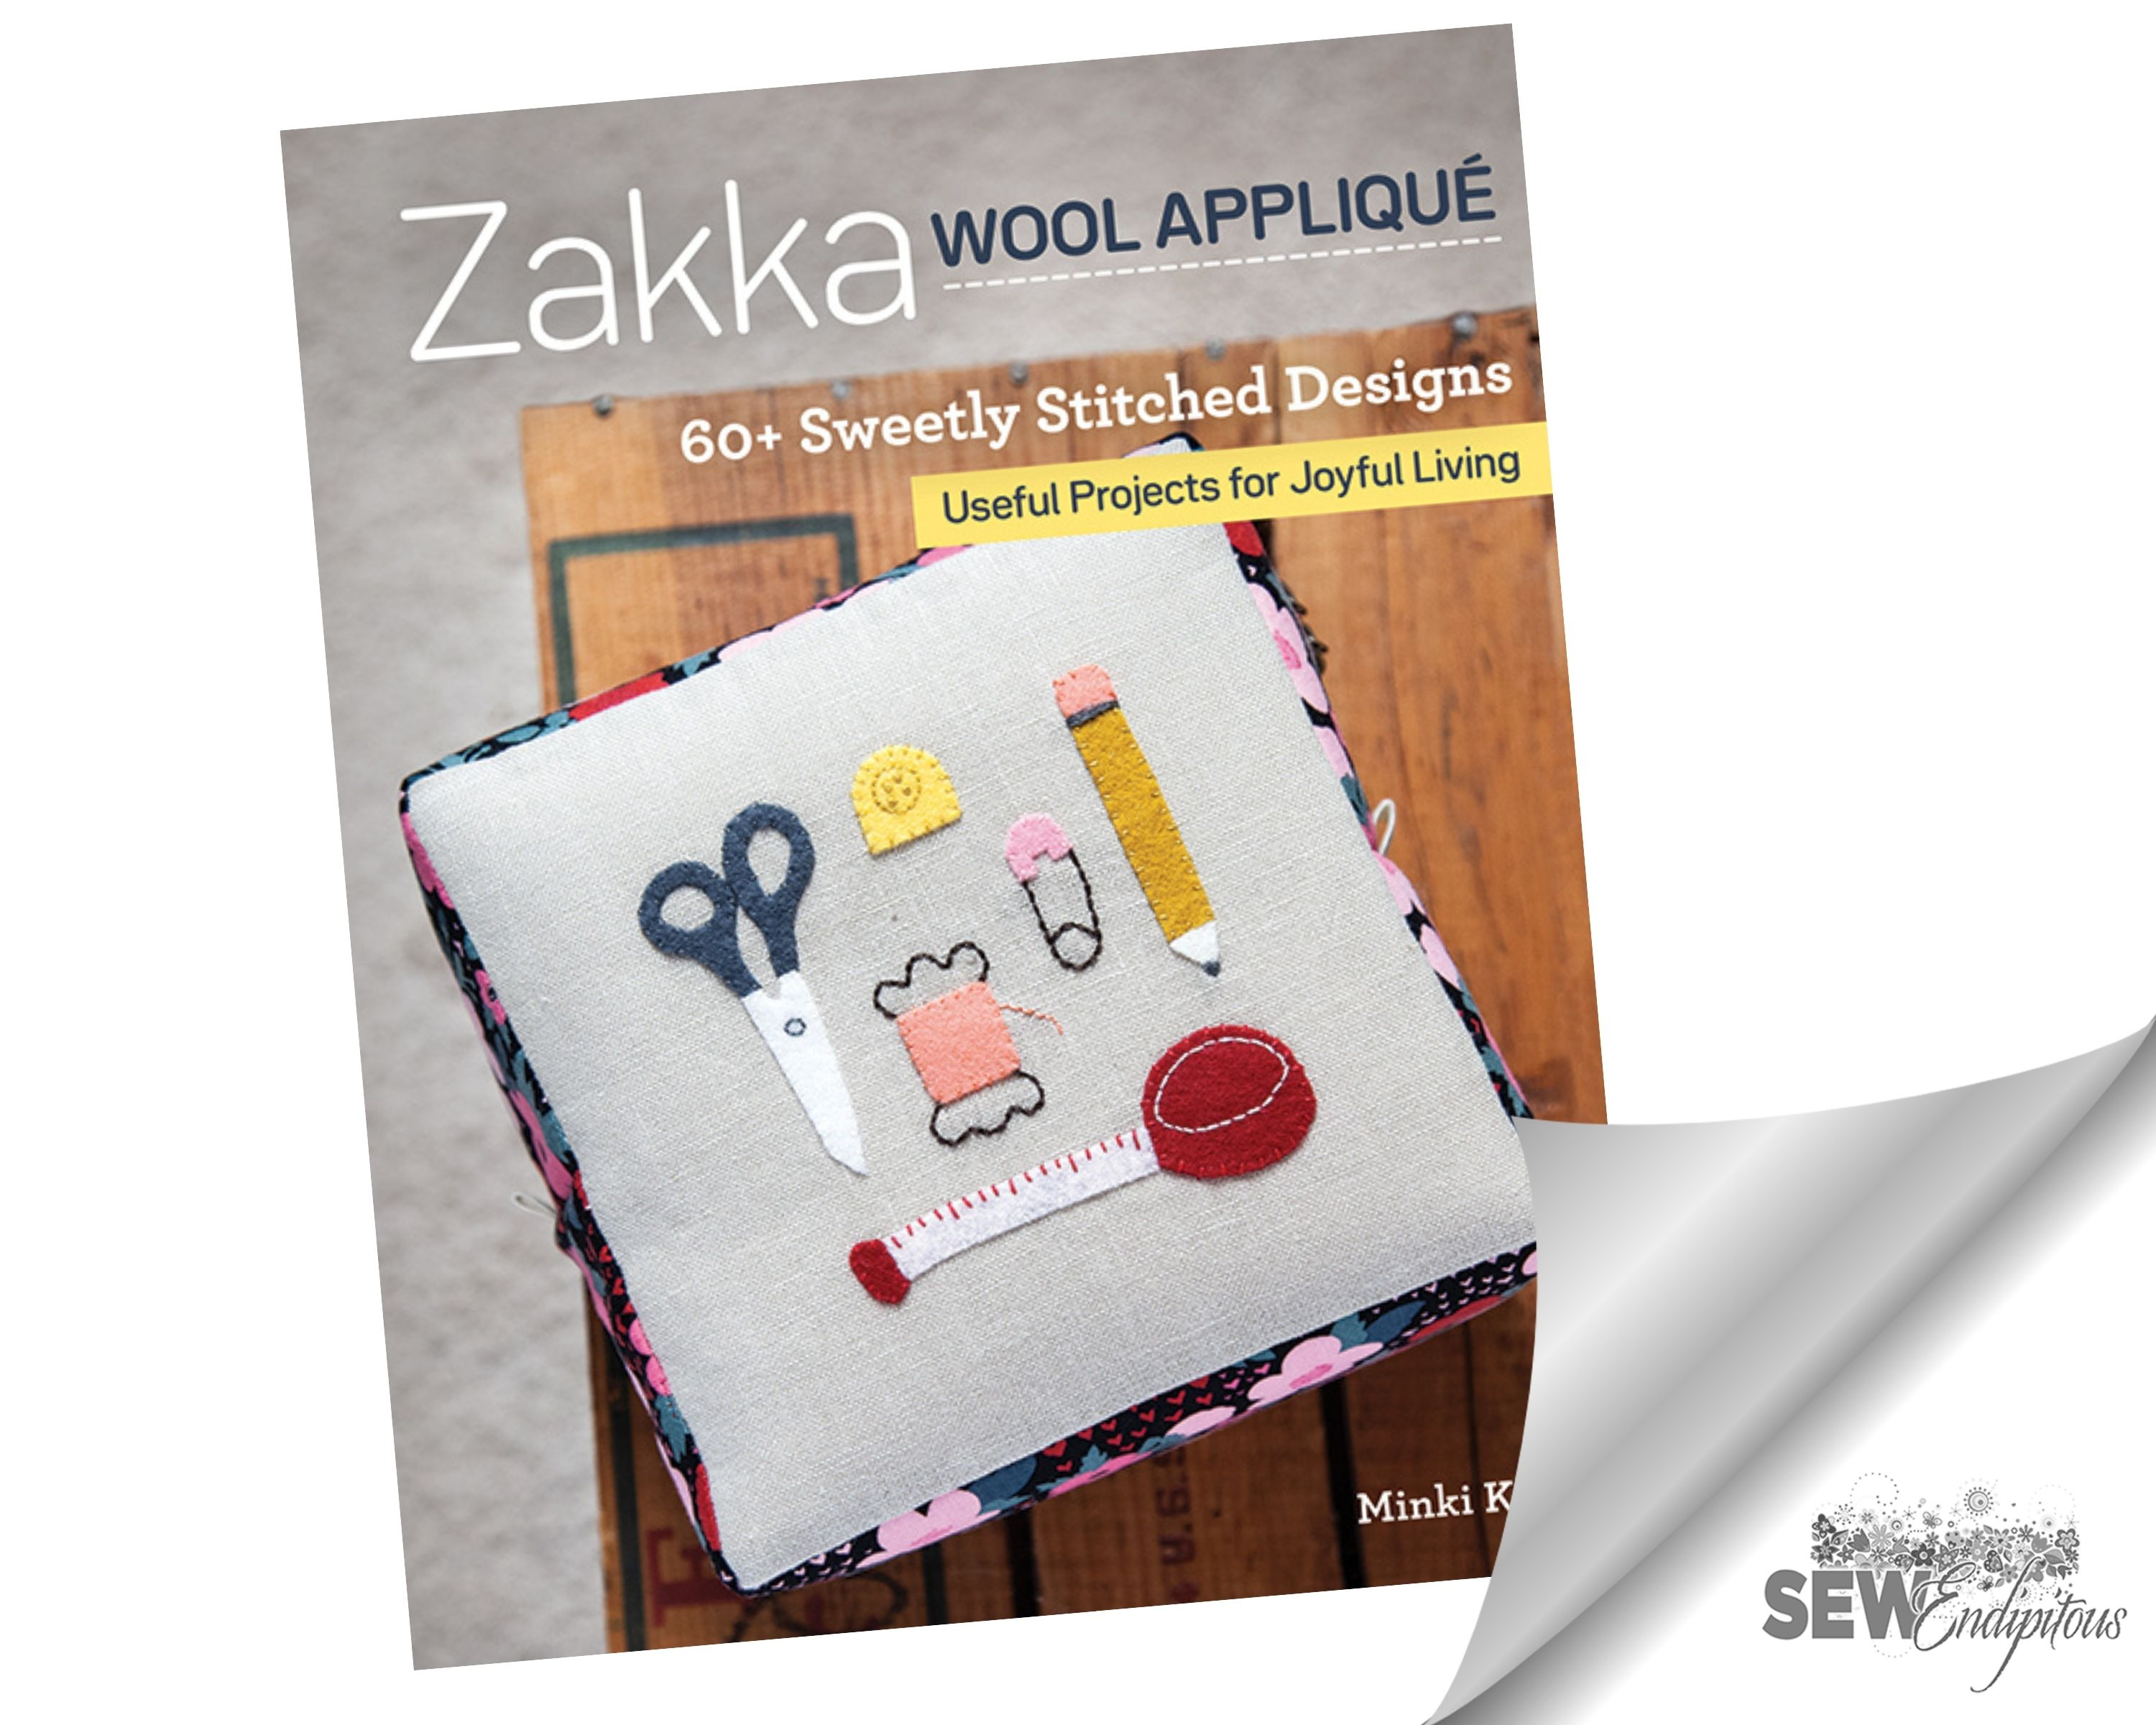 Zakka Wool Applique Book - 11386 C & T Publishing